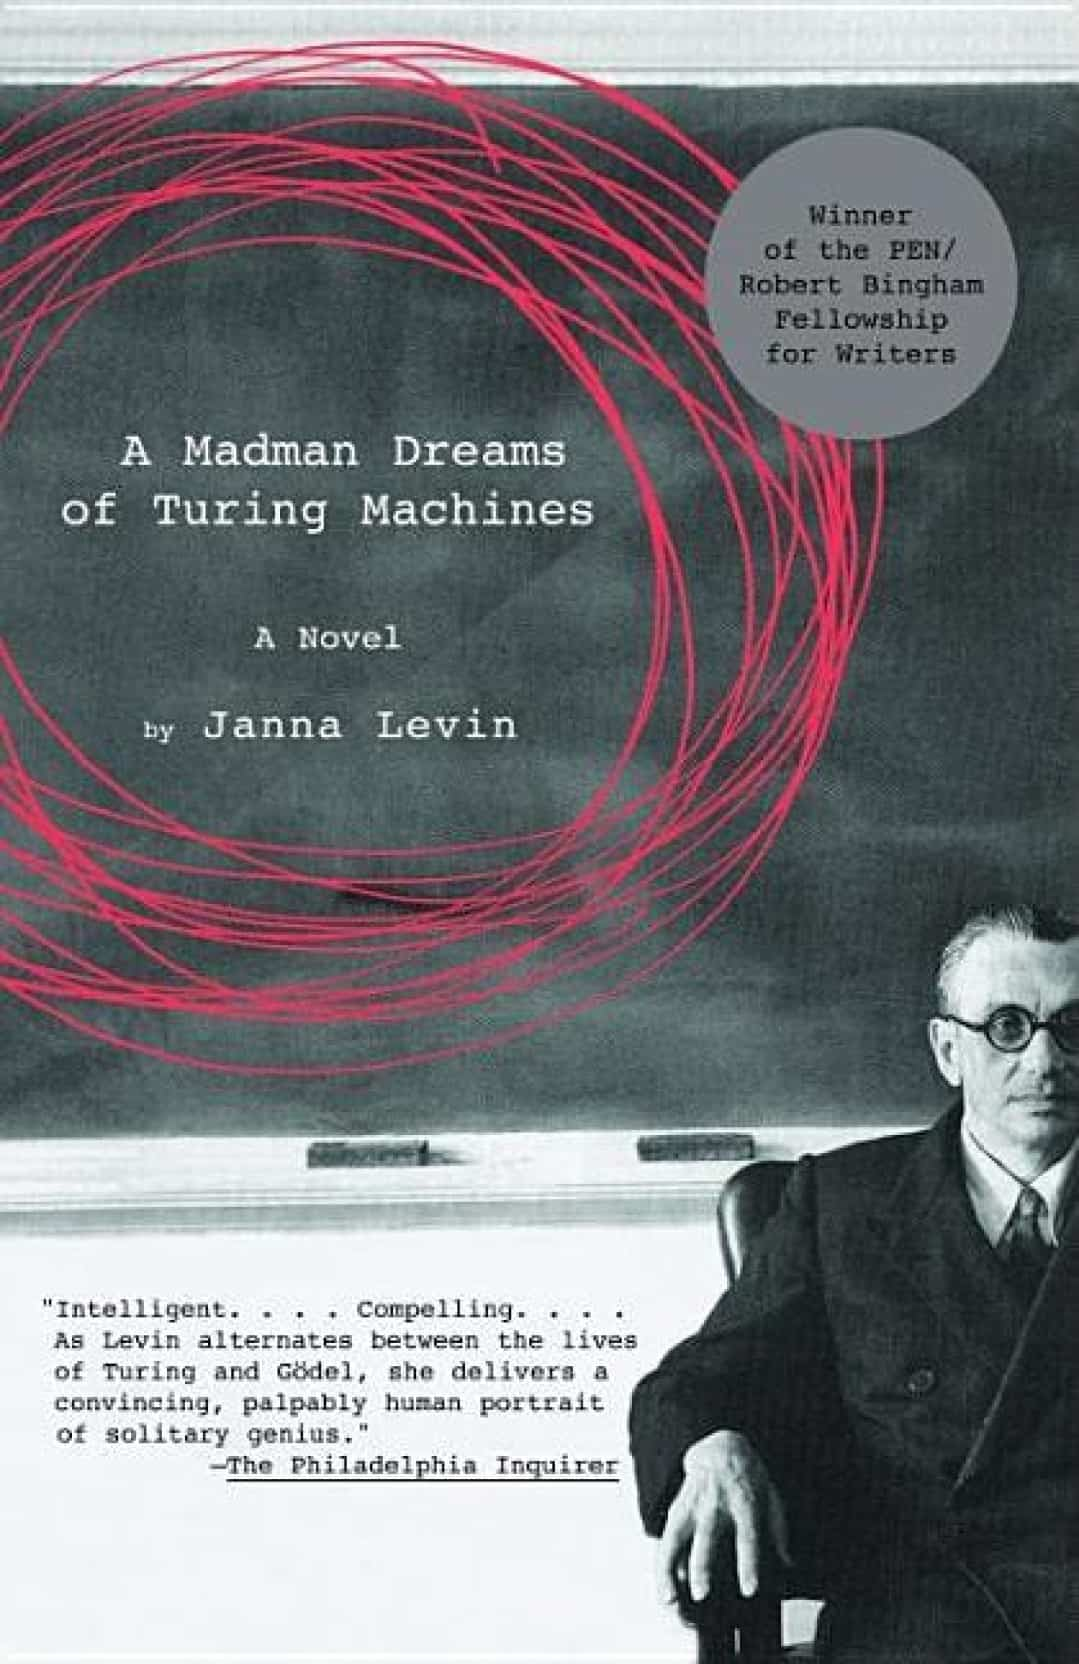 A Madman Dreams of Turing Machines - A Madman Dreams of Turing Machines